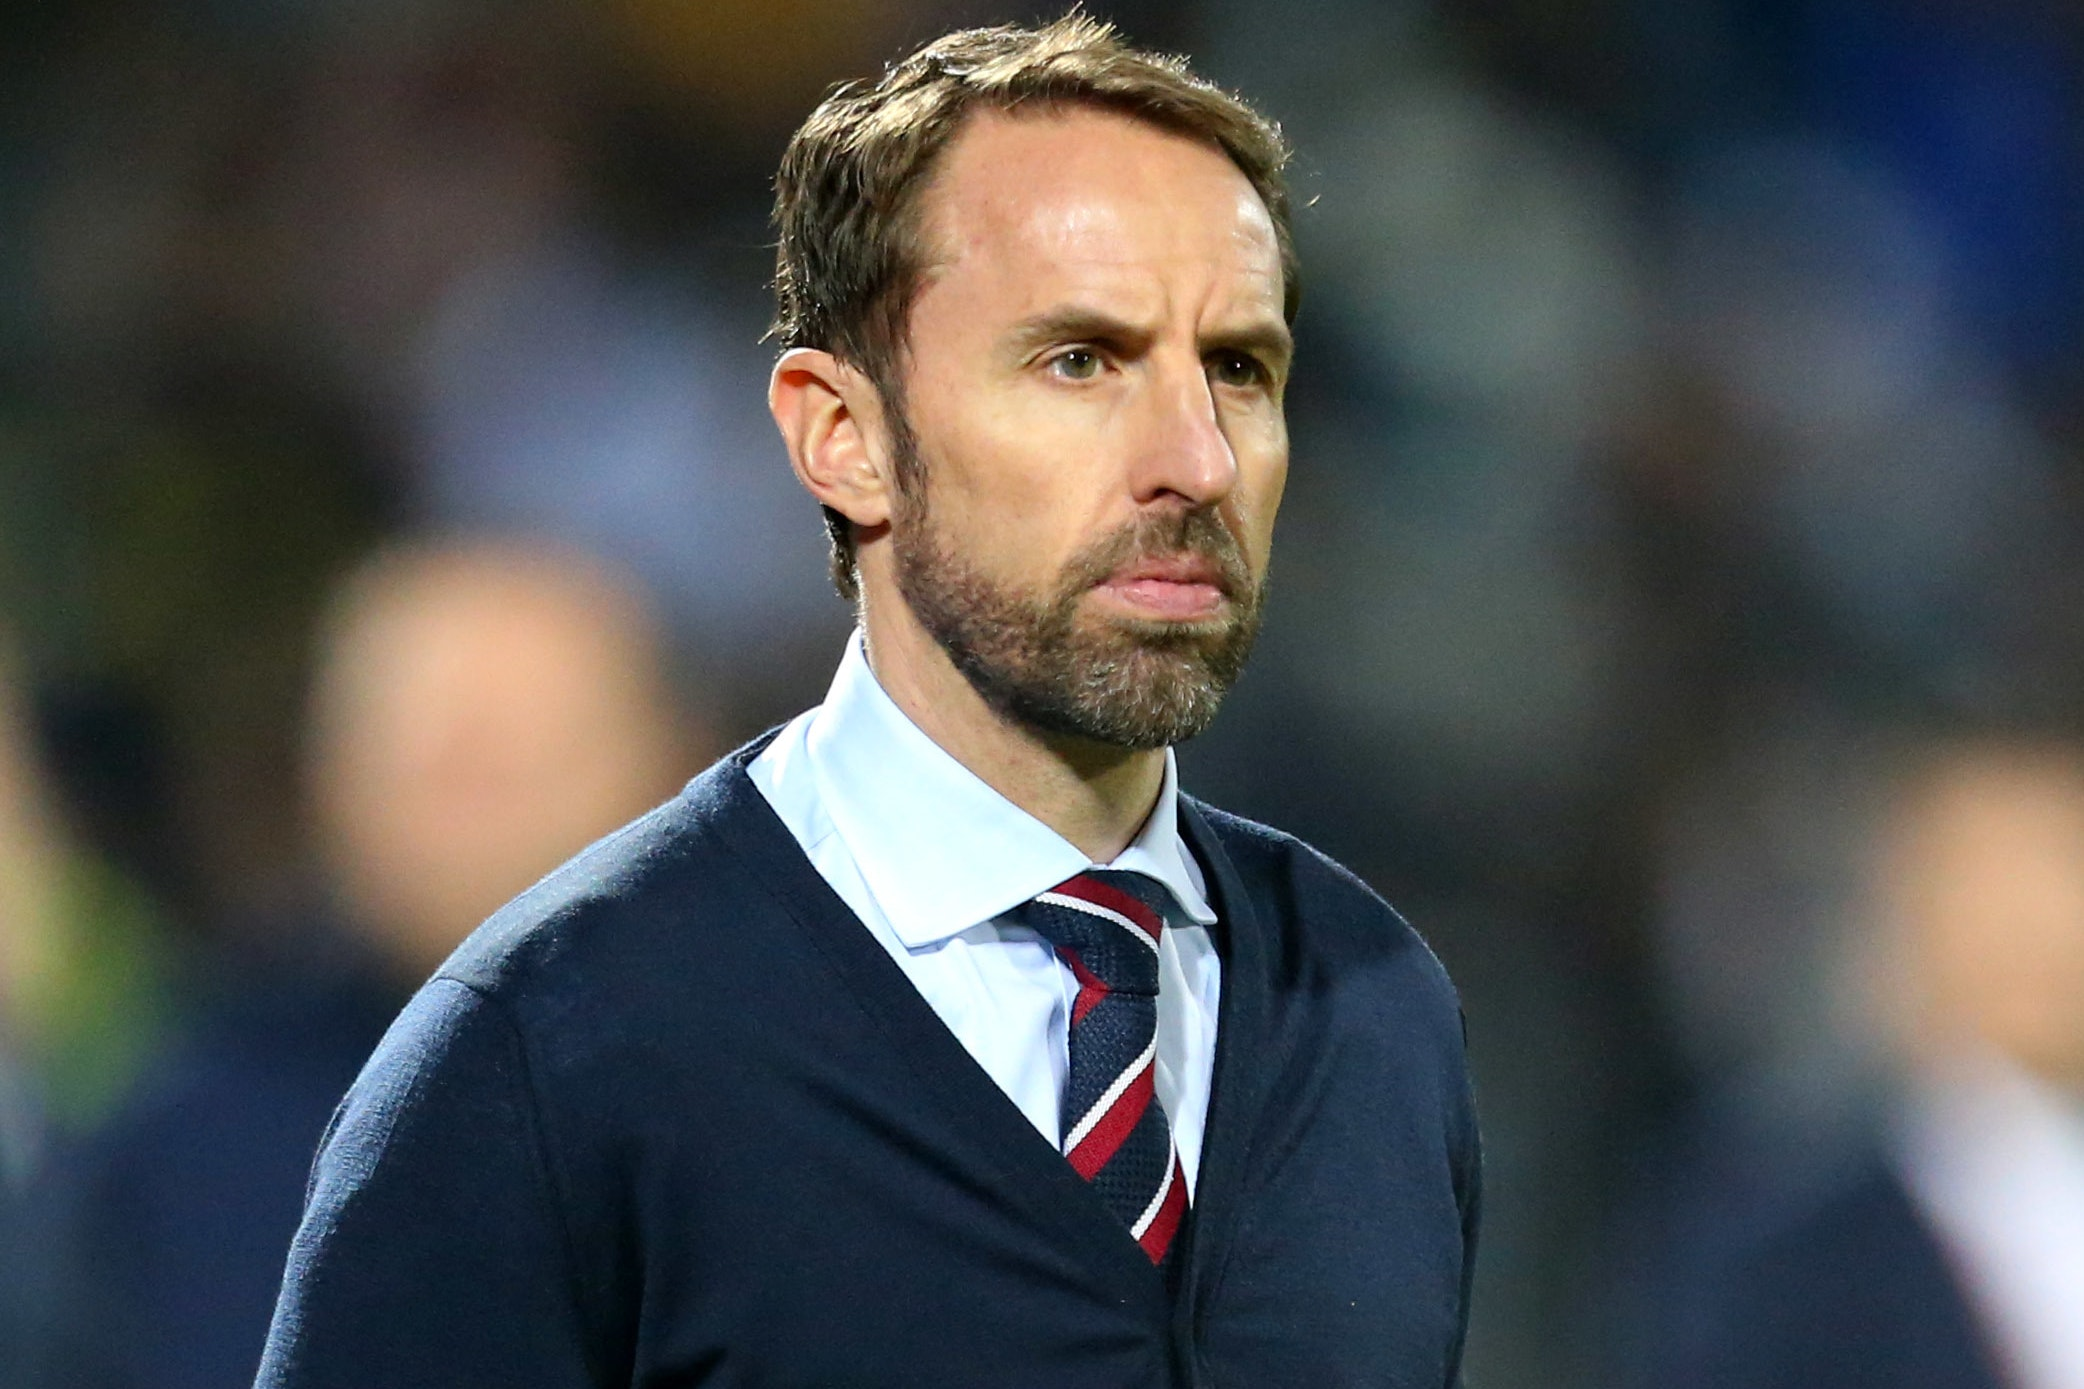 Gareth Southgate planning for Qatar 2022 but 'realistic' over England future - Dudley News